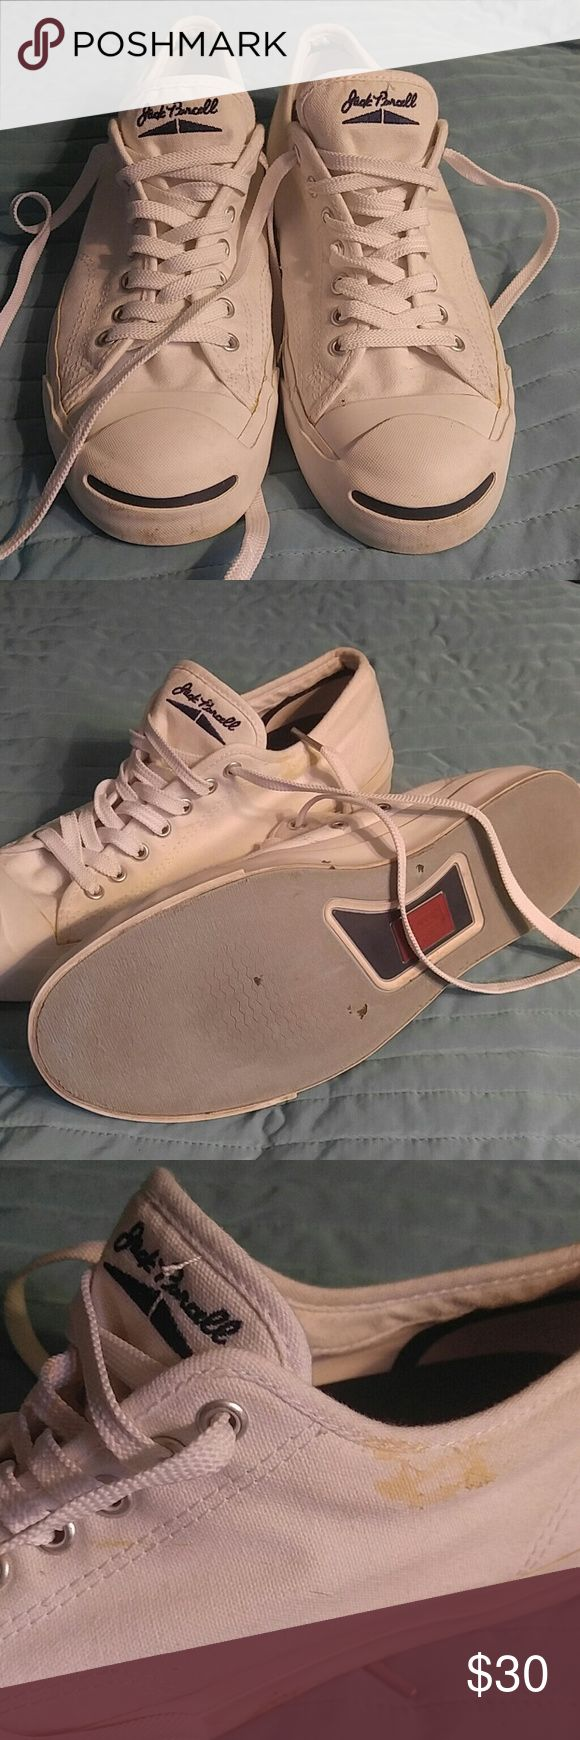 Converse Jack Purcell white sneakers Sz 10 Classic converse design in white. Item features some slight yellowing (pictured) but otherwise in very nice shape. Converse Shoes Sneakers